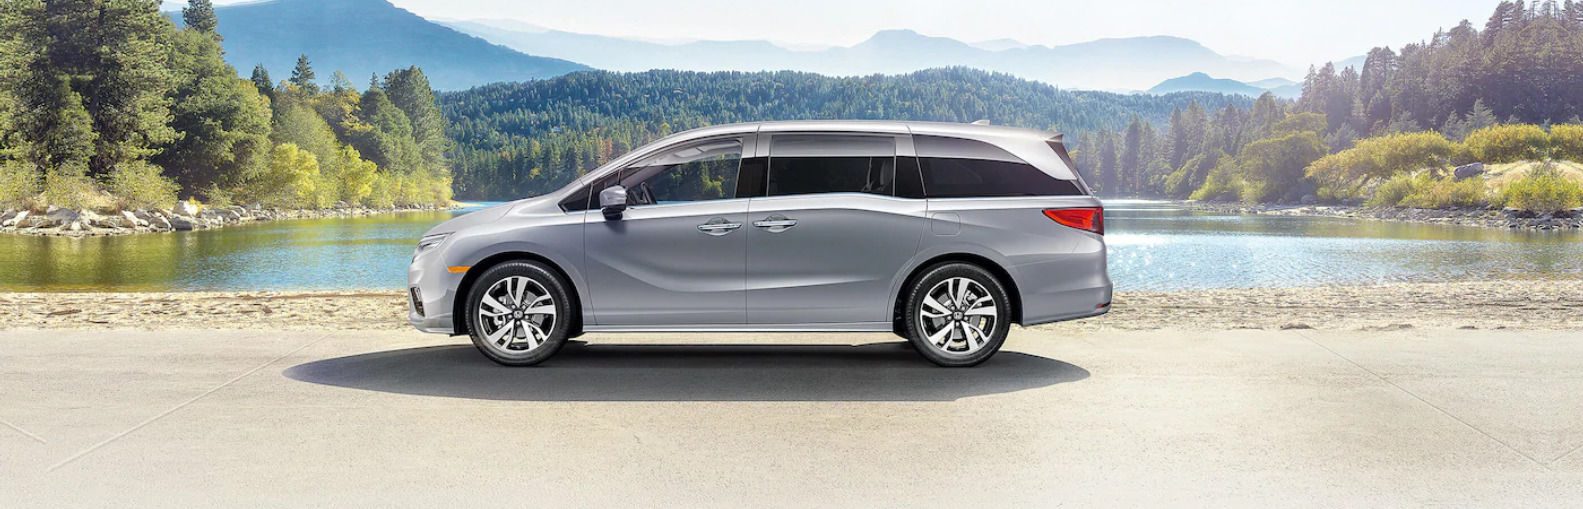 2020 Honda Odyssey for Sale near Atlanta, GA